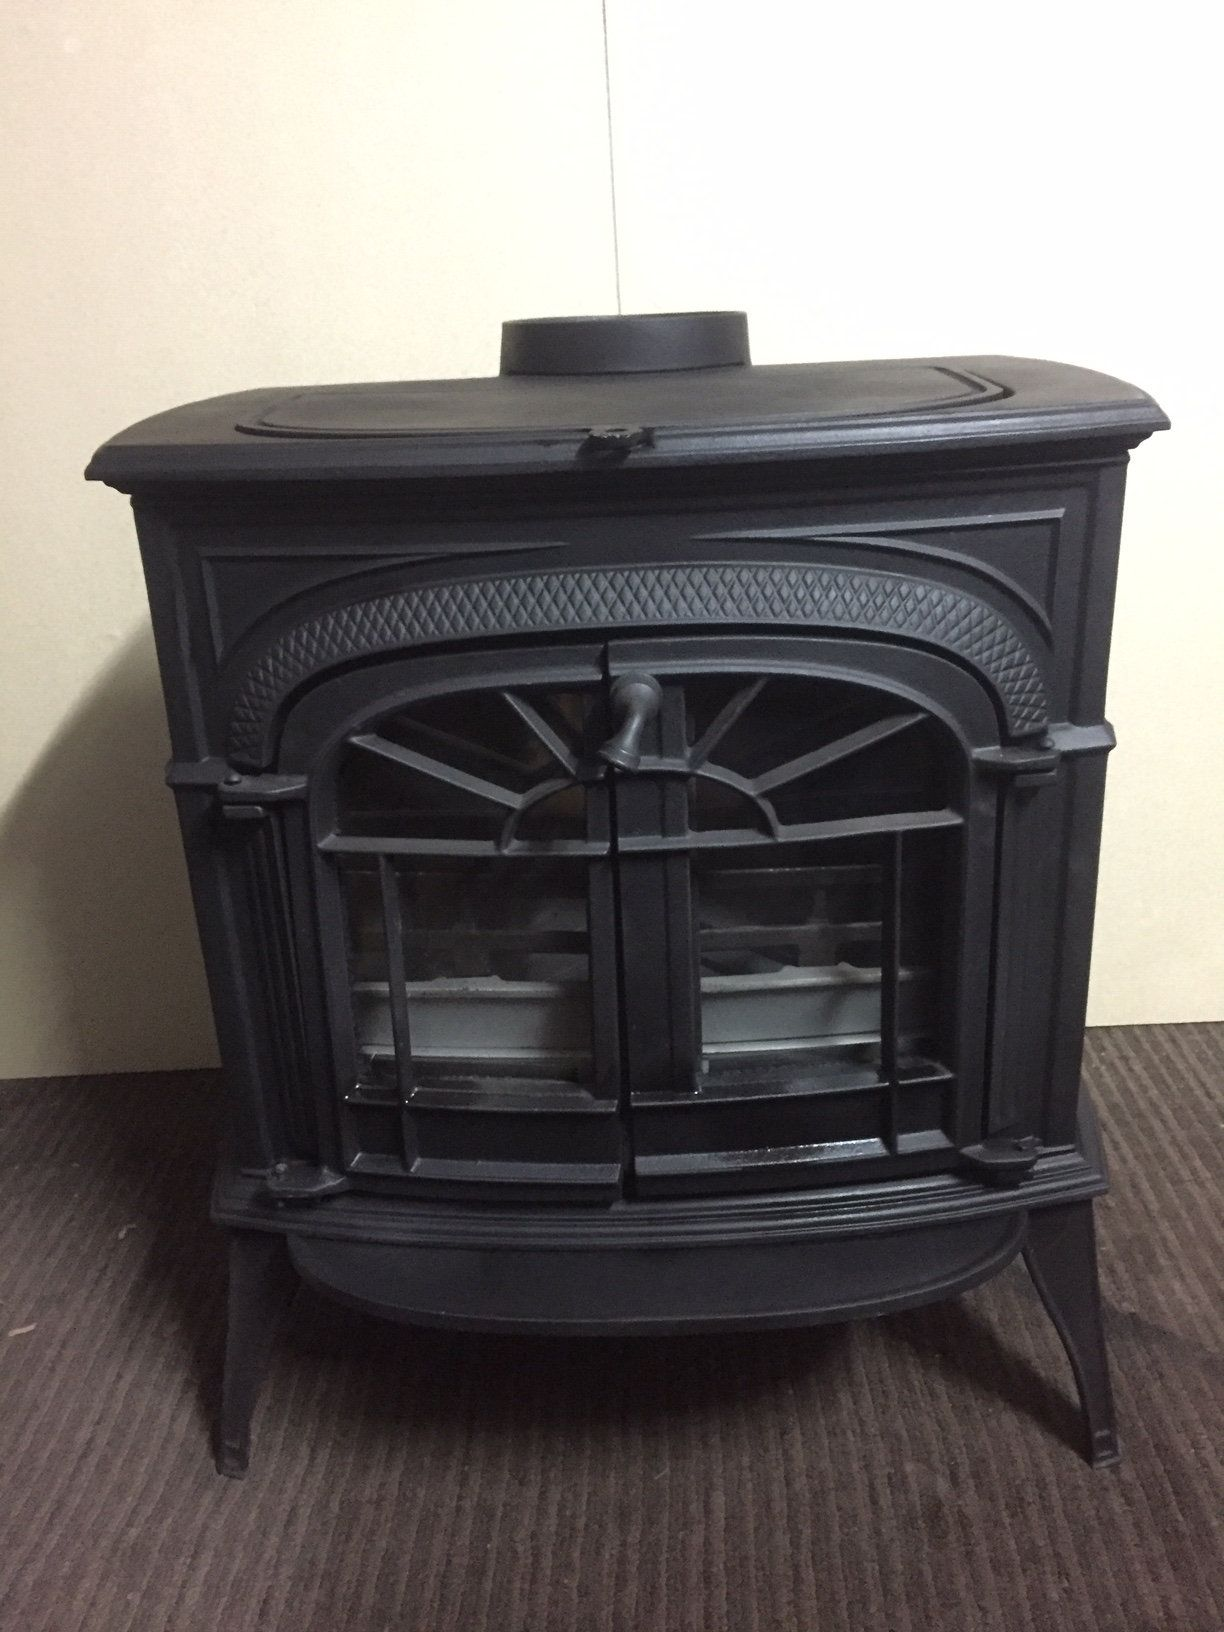 Vermont Castings Intrepid 2 Wood Burning Stove Fully Re Conditioned Re Furbed Wood Burning Stove Stove Wood Burning